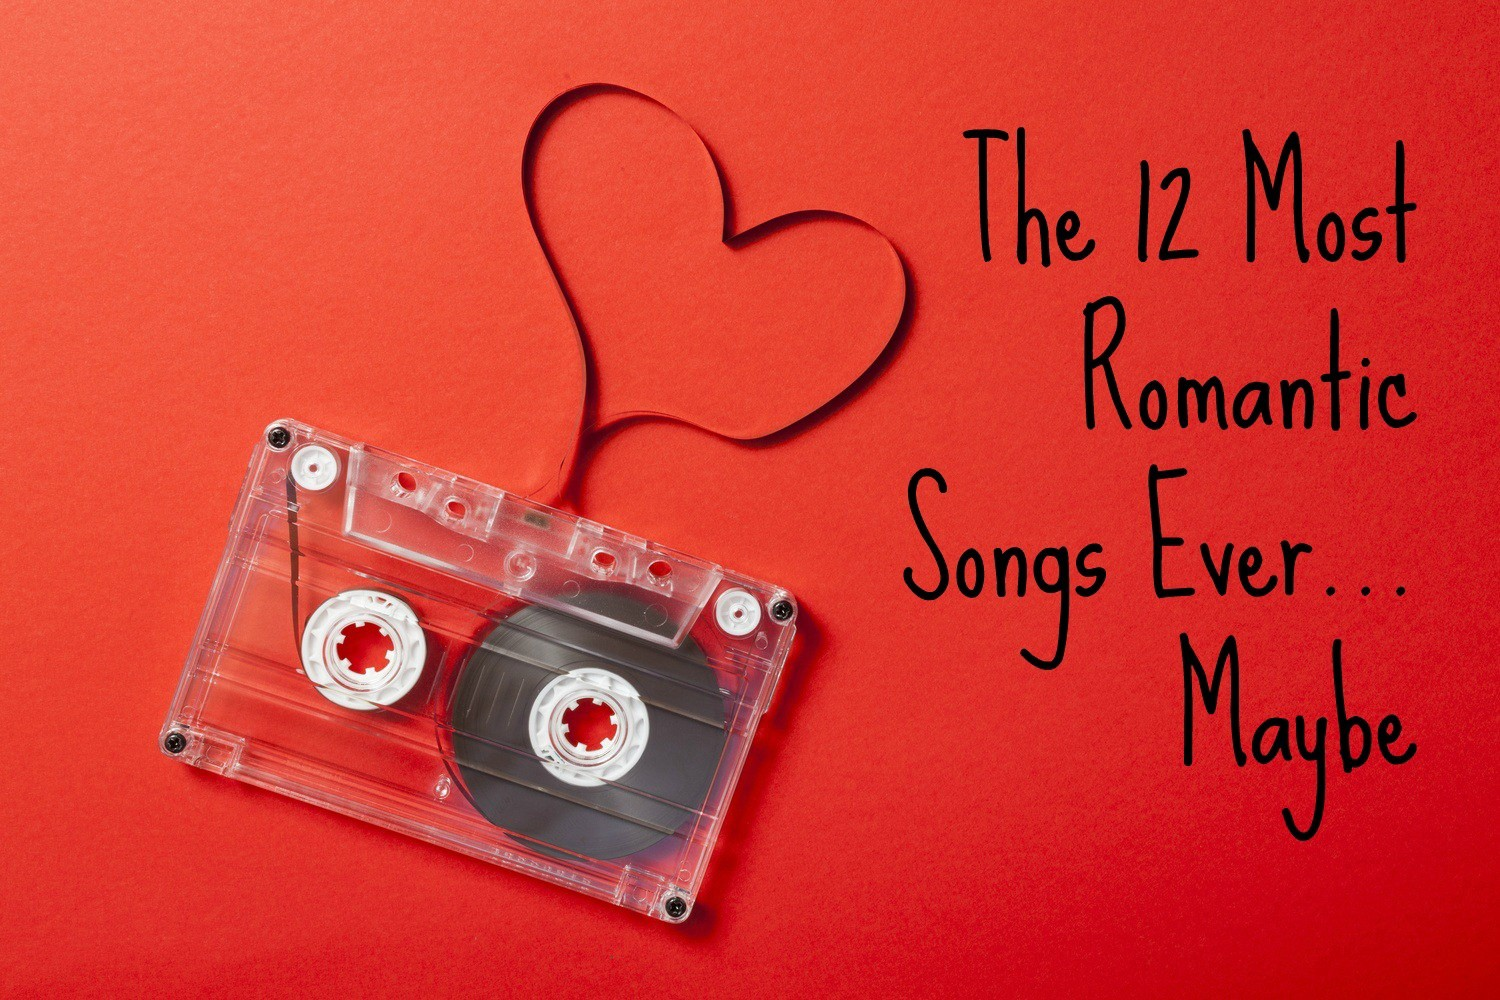 List of all romantic songs